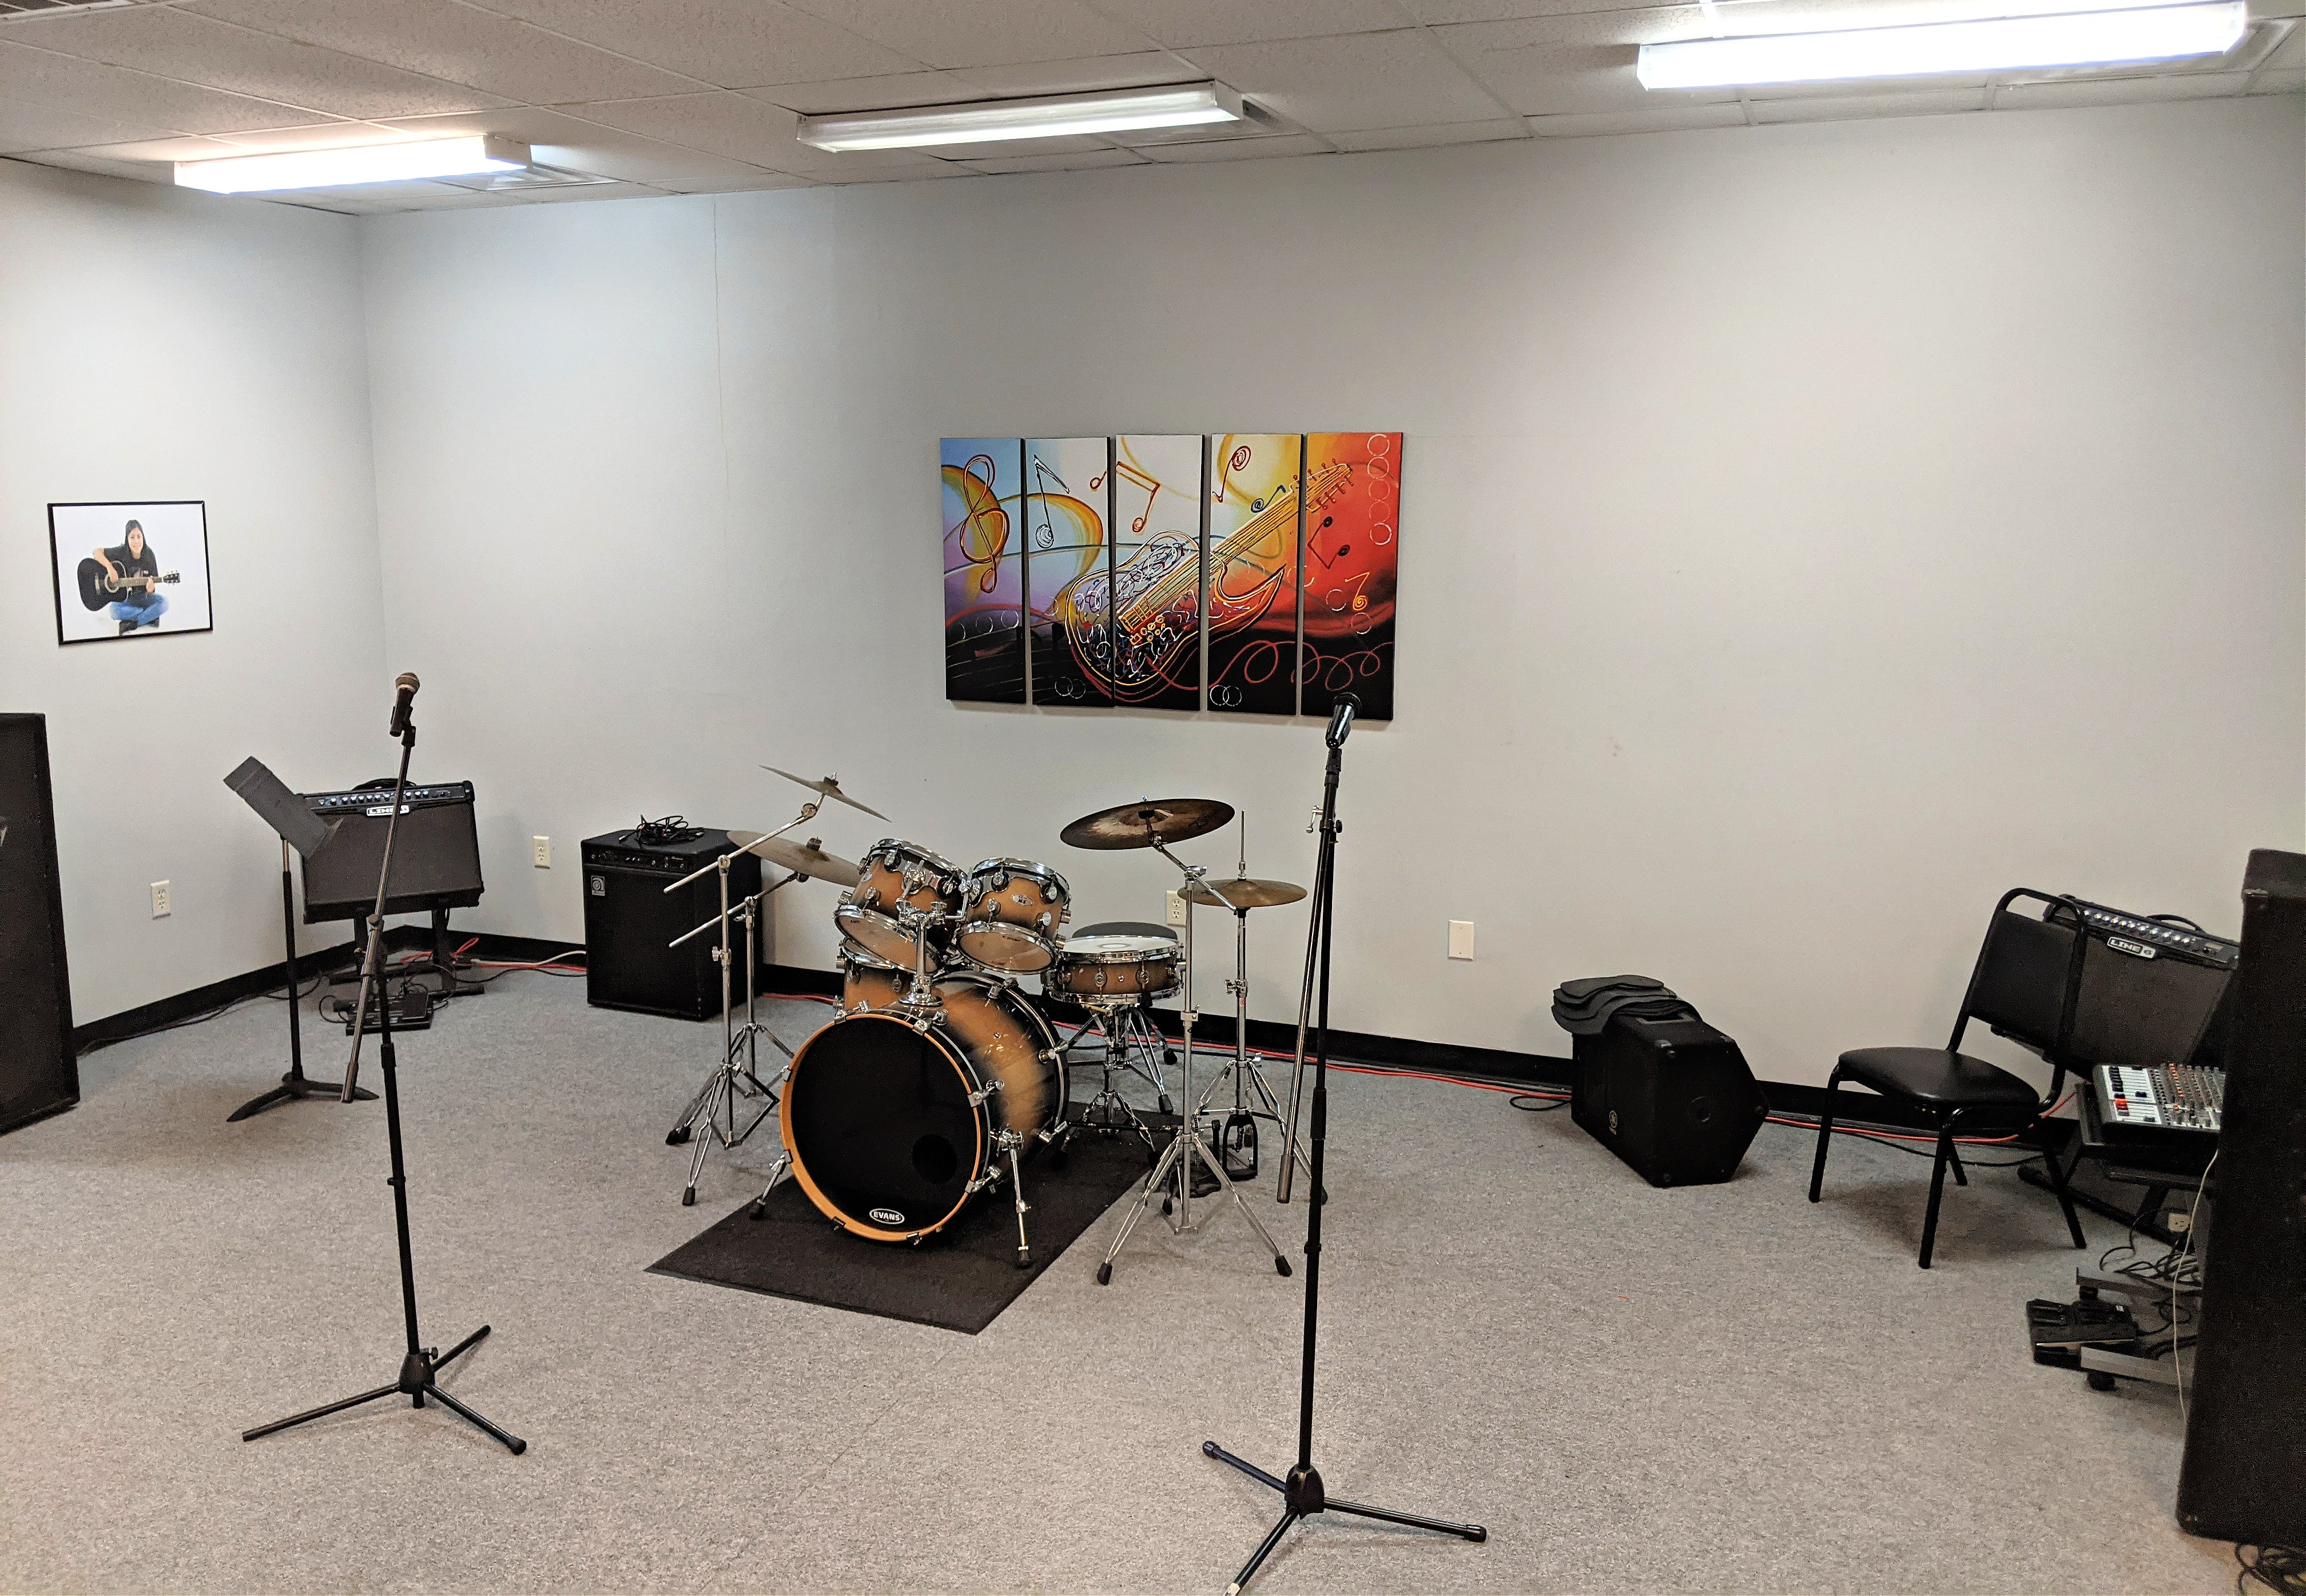 rock band classes for kids near me in conway ar